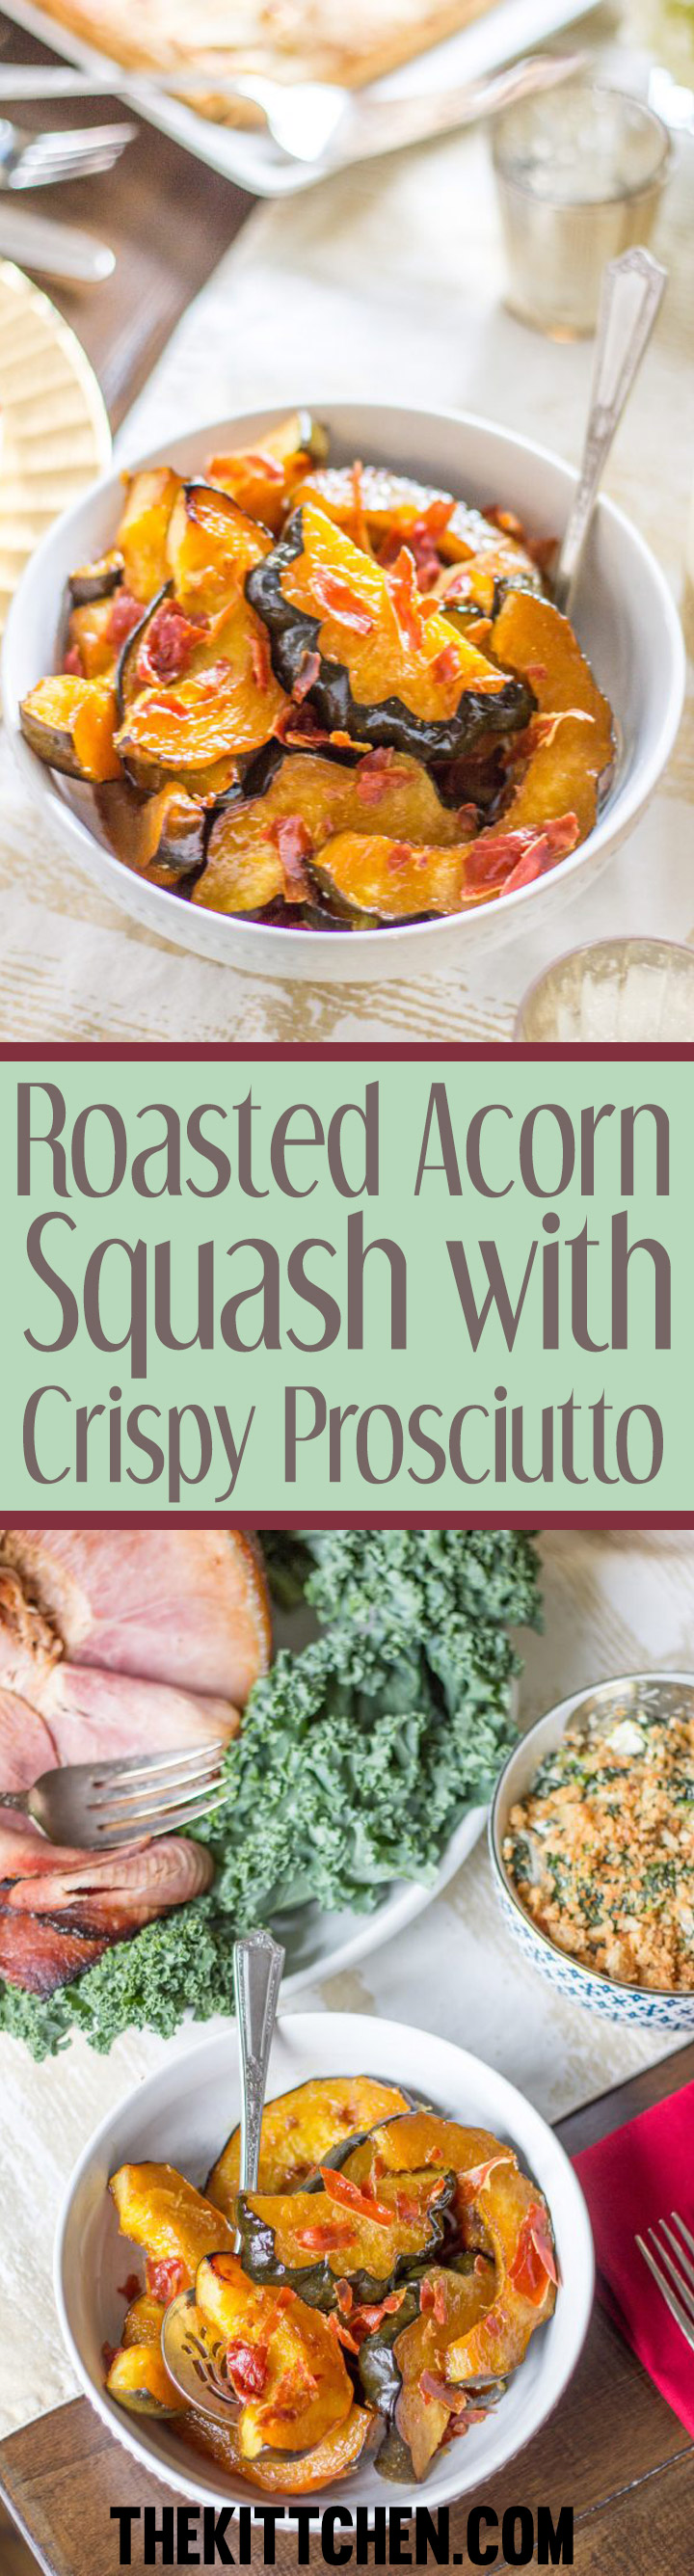 Roasted Acorn Squash is a perfect holiday side dish